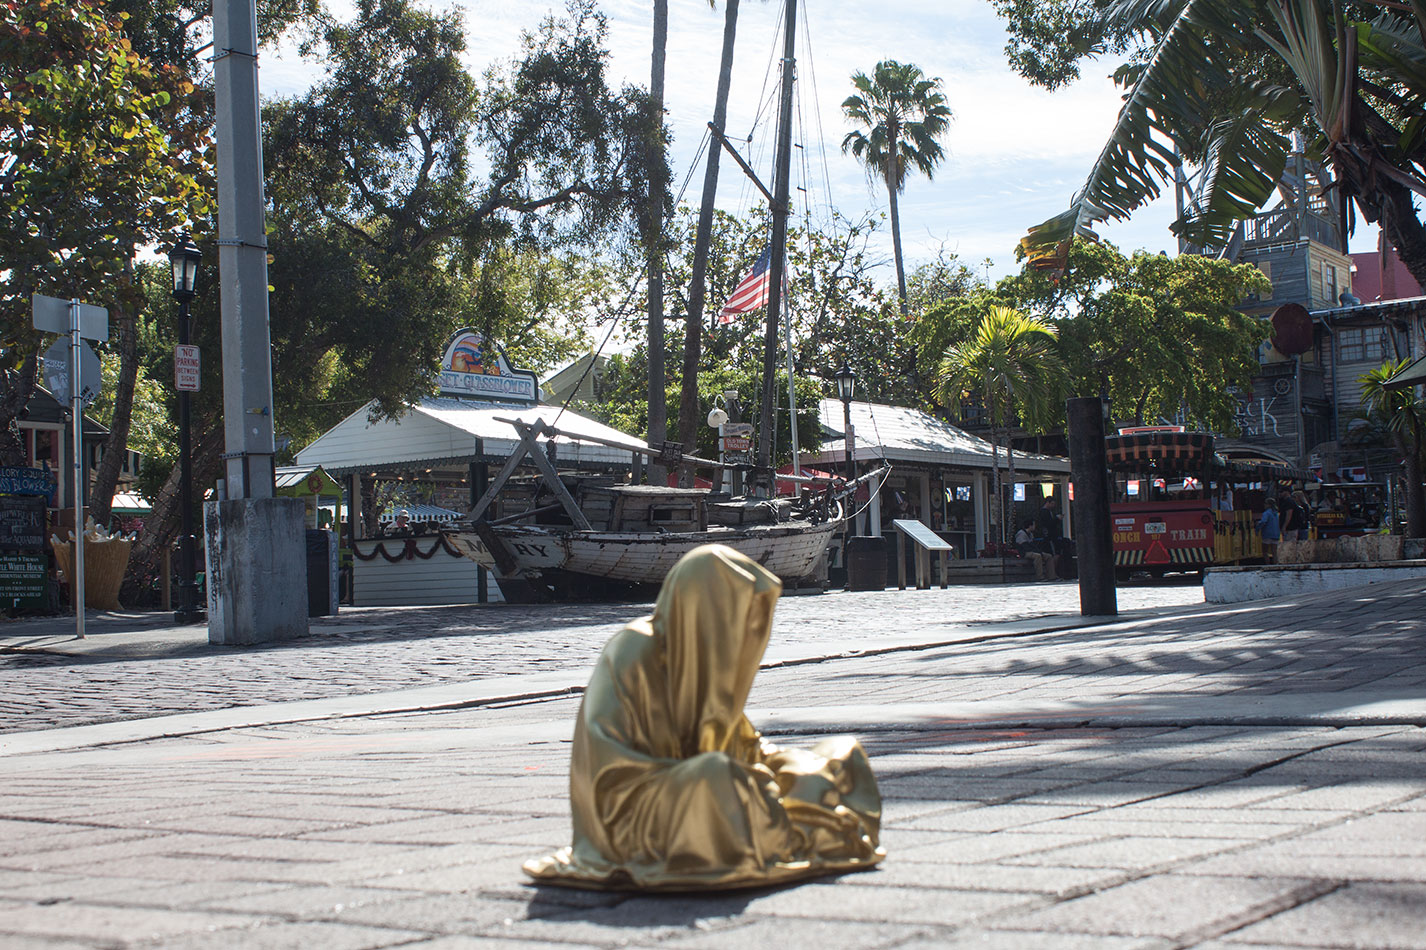 public-art-basel-miami-beach-fair-usa-florida-guardians-of-time-manfred-kili-kielnhofer-contemporary-fine-art-modern-arts-design-antiques-sculpture-6767